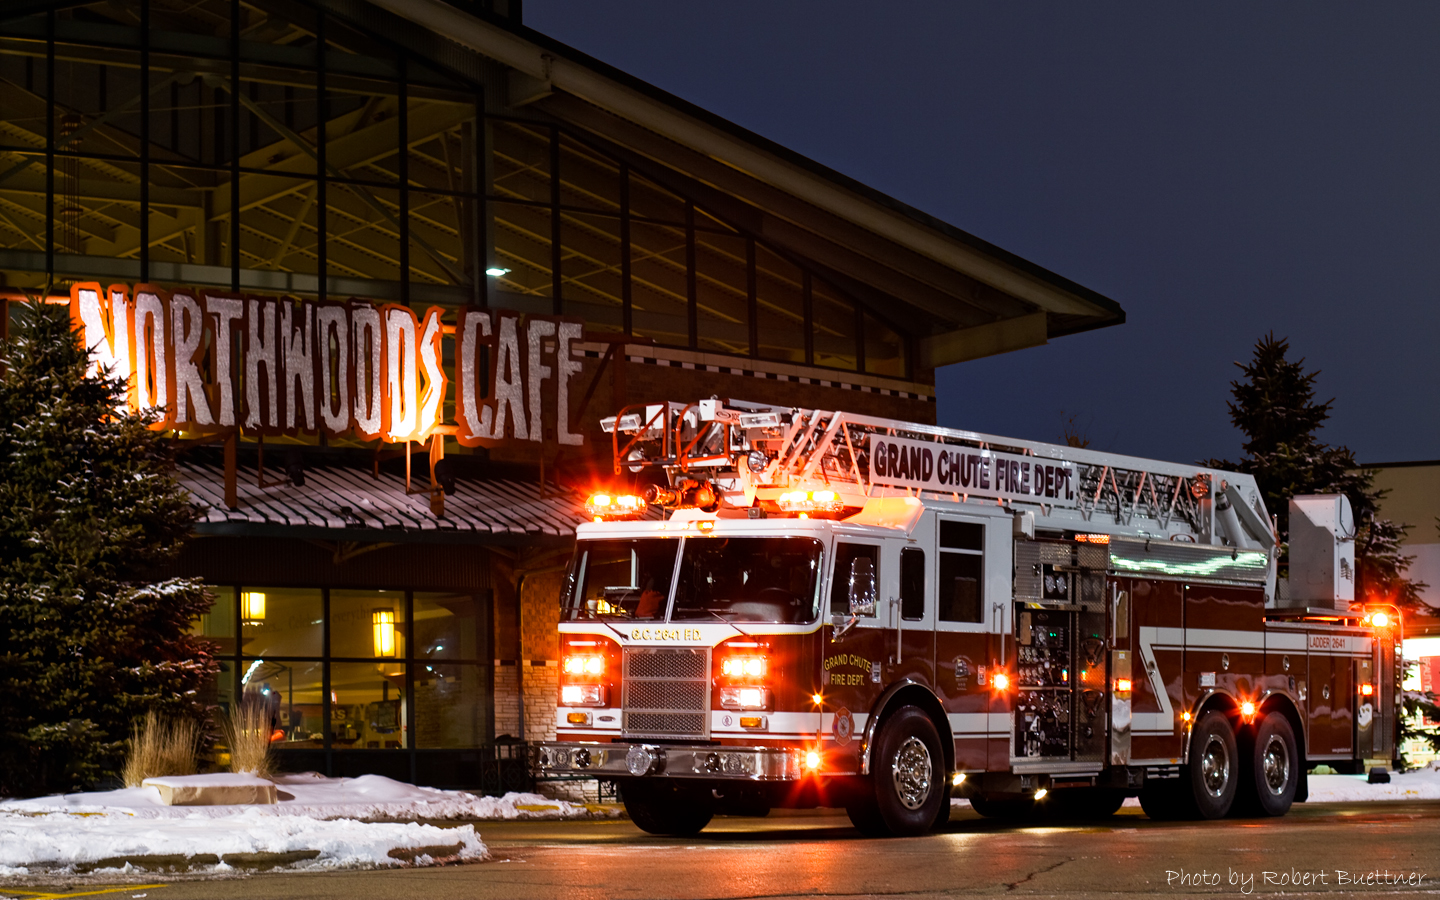 Ladder 2641 In Front of Northwoods Cafe